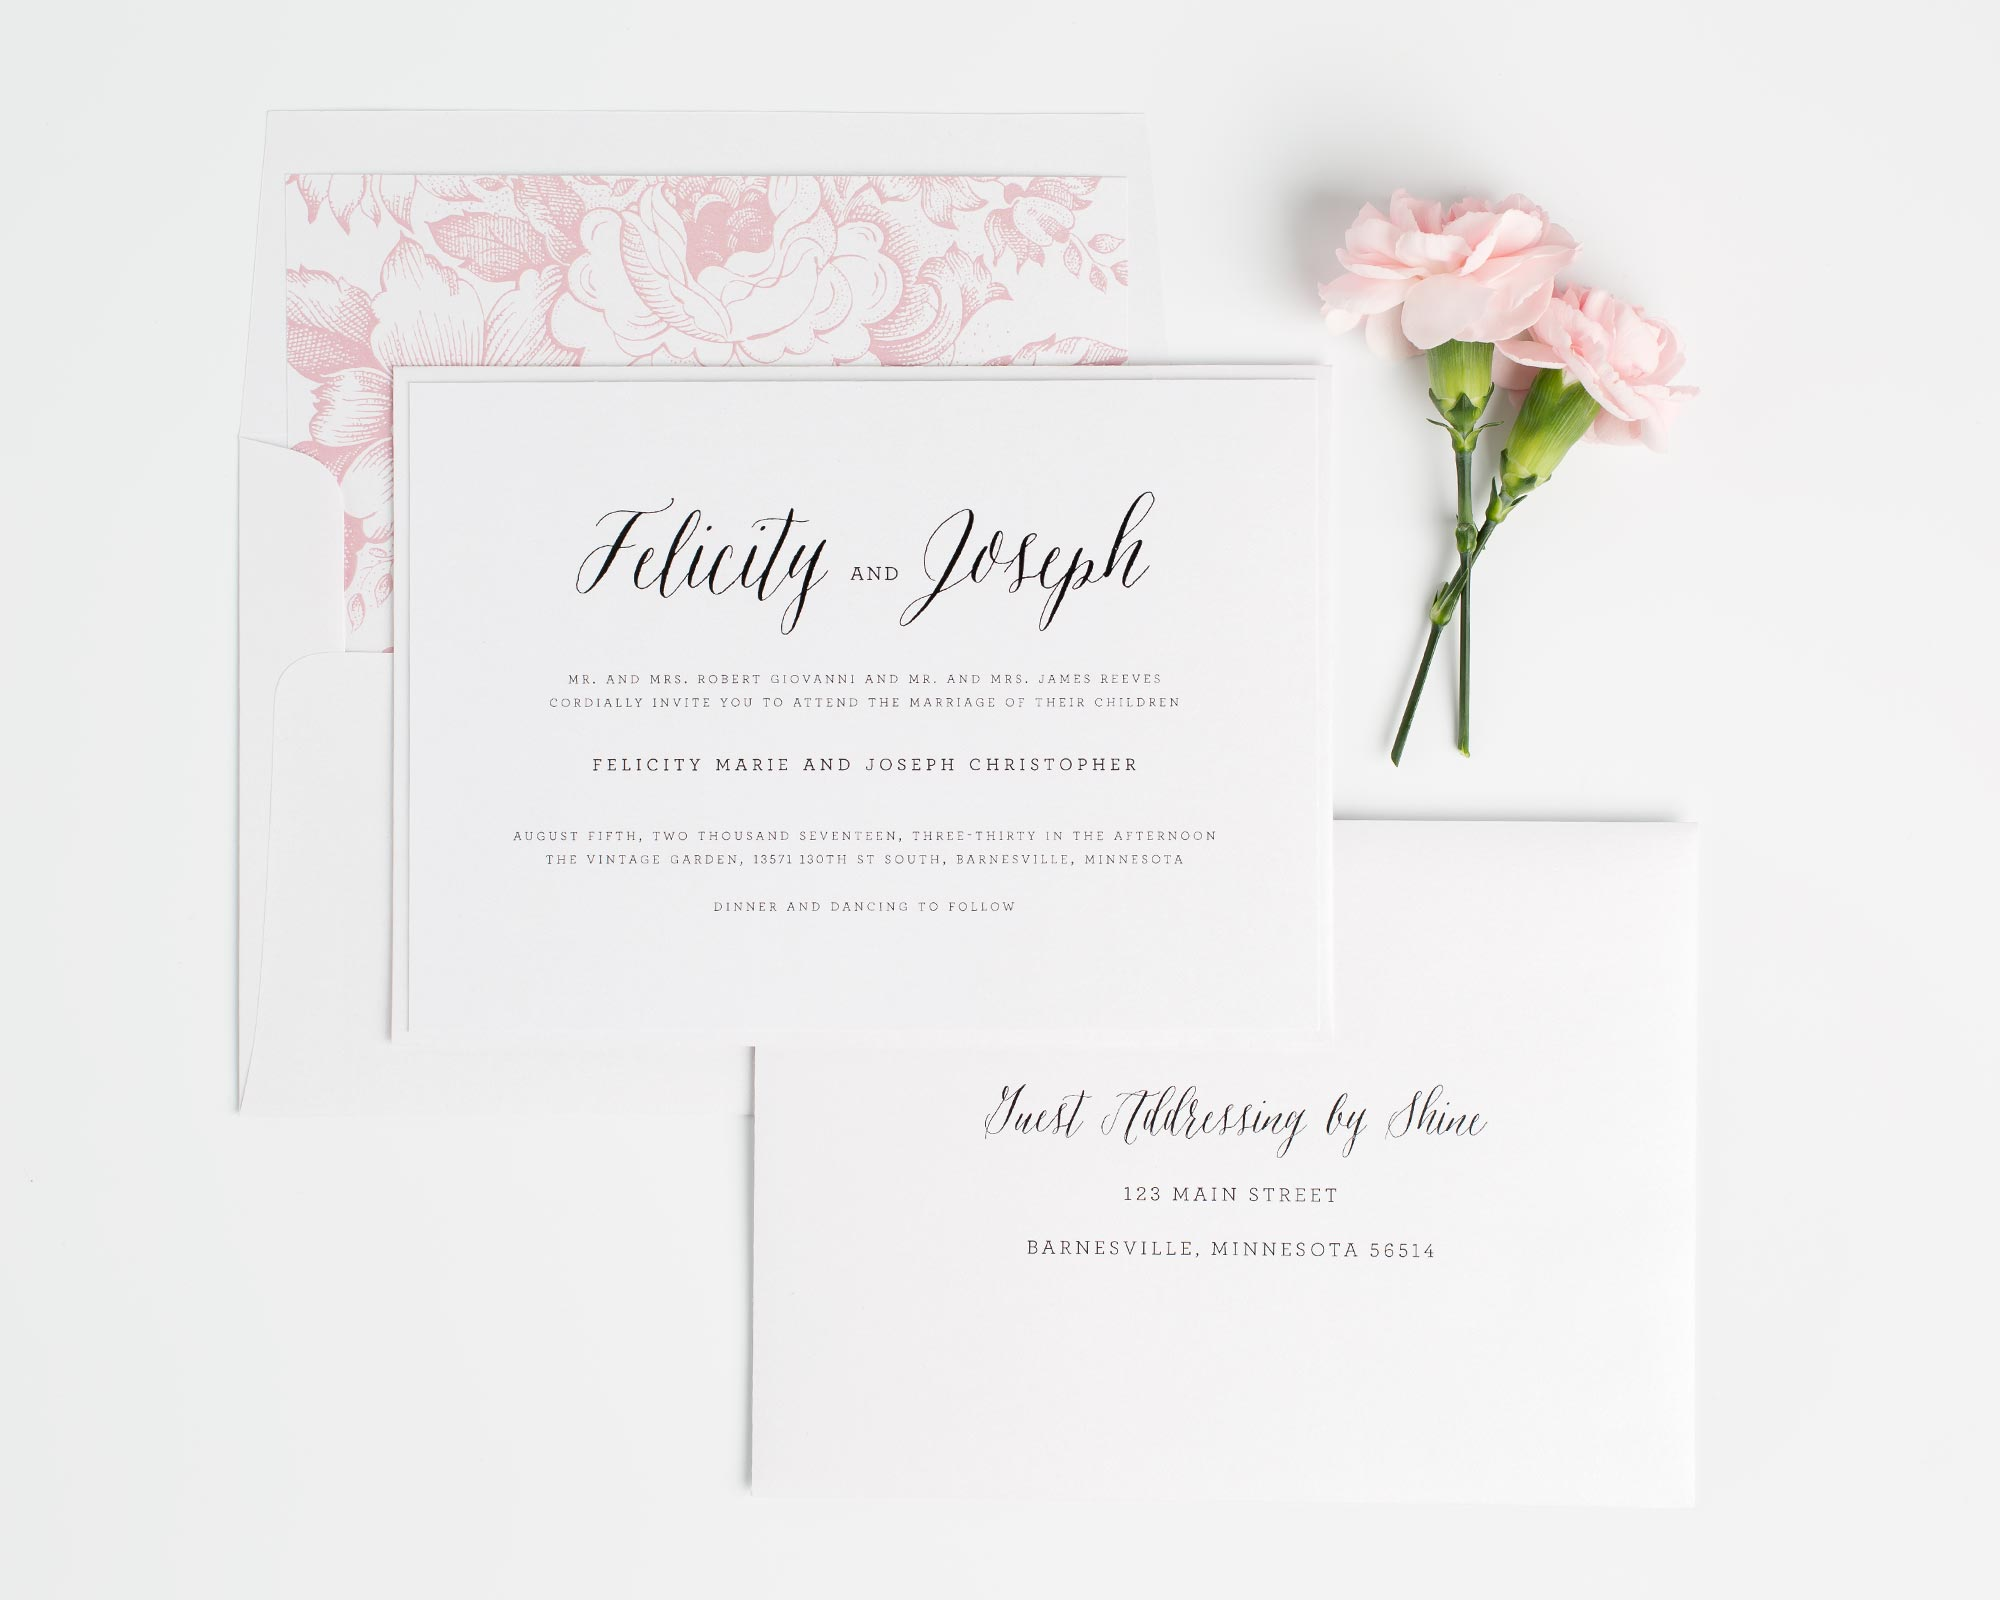 Rustic Wedding Invitations in Pink